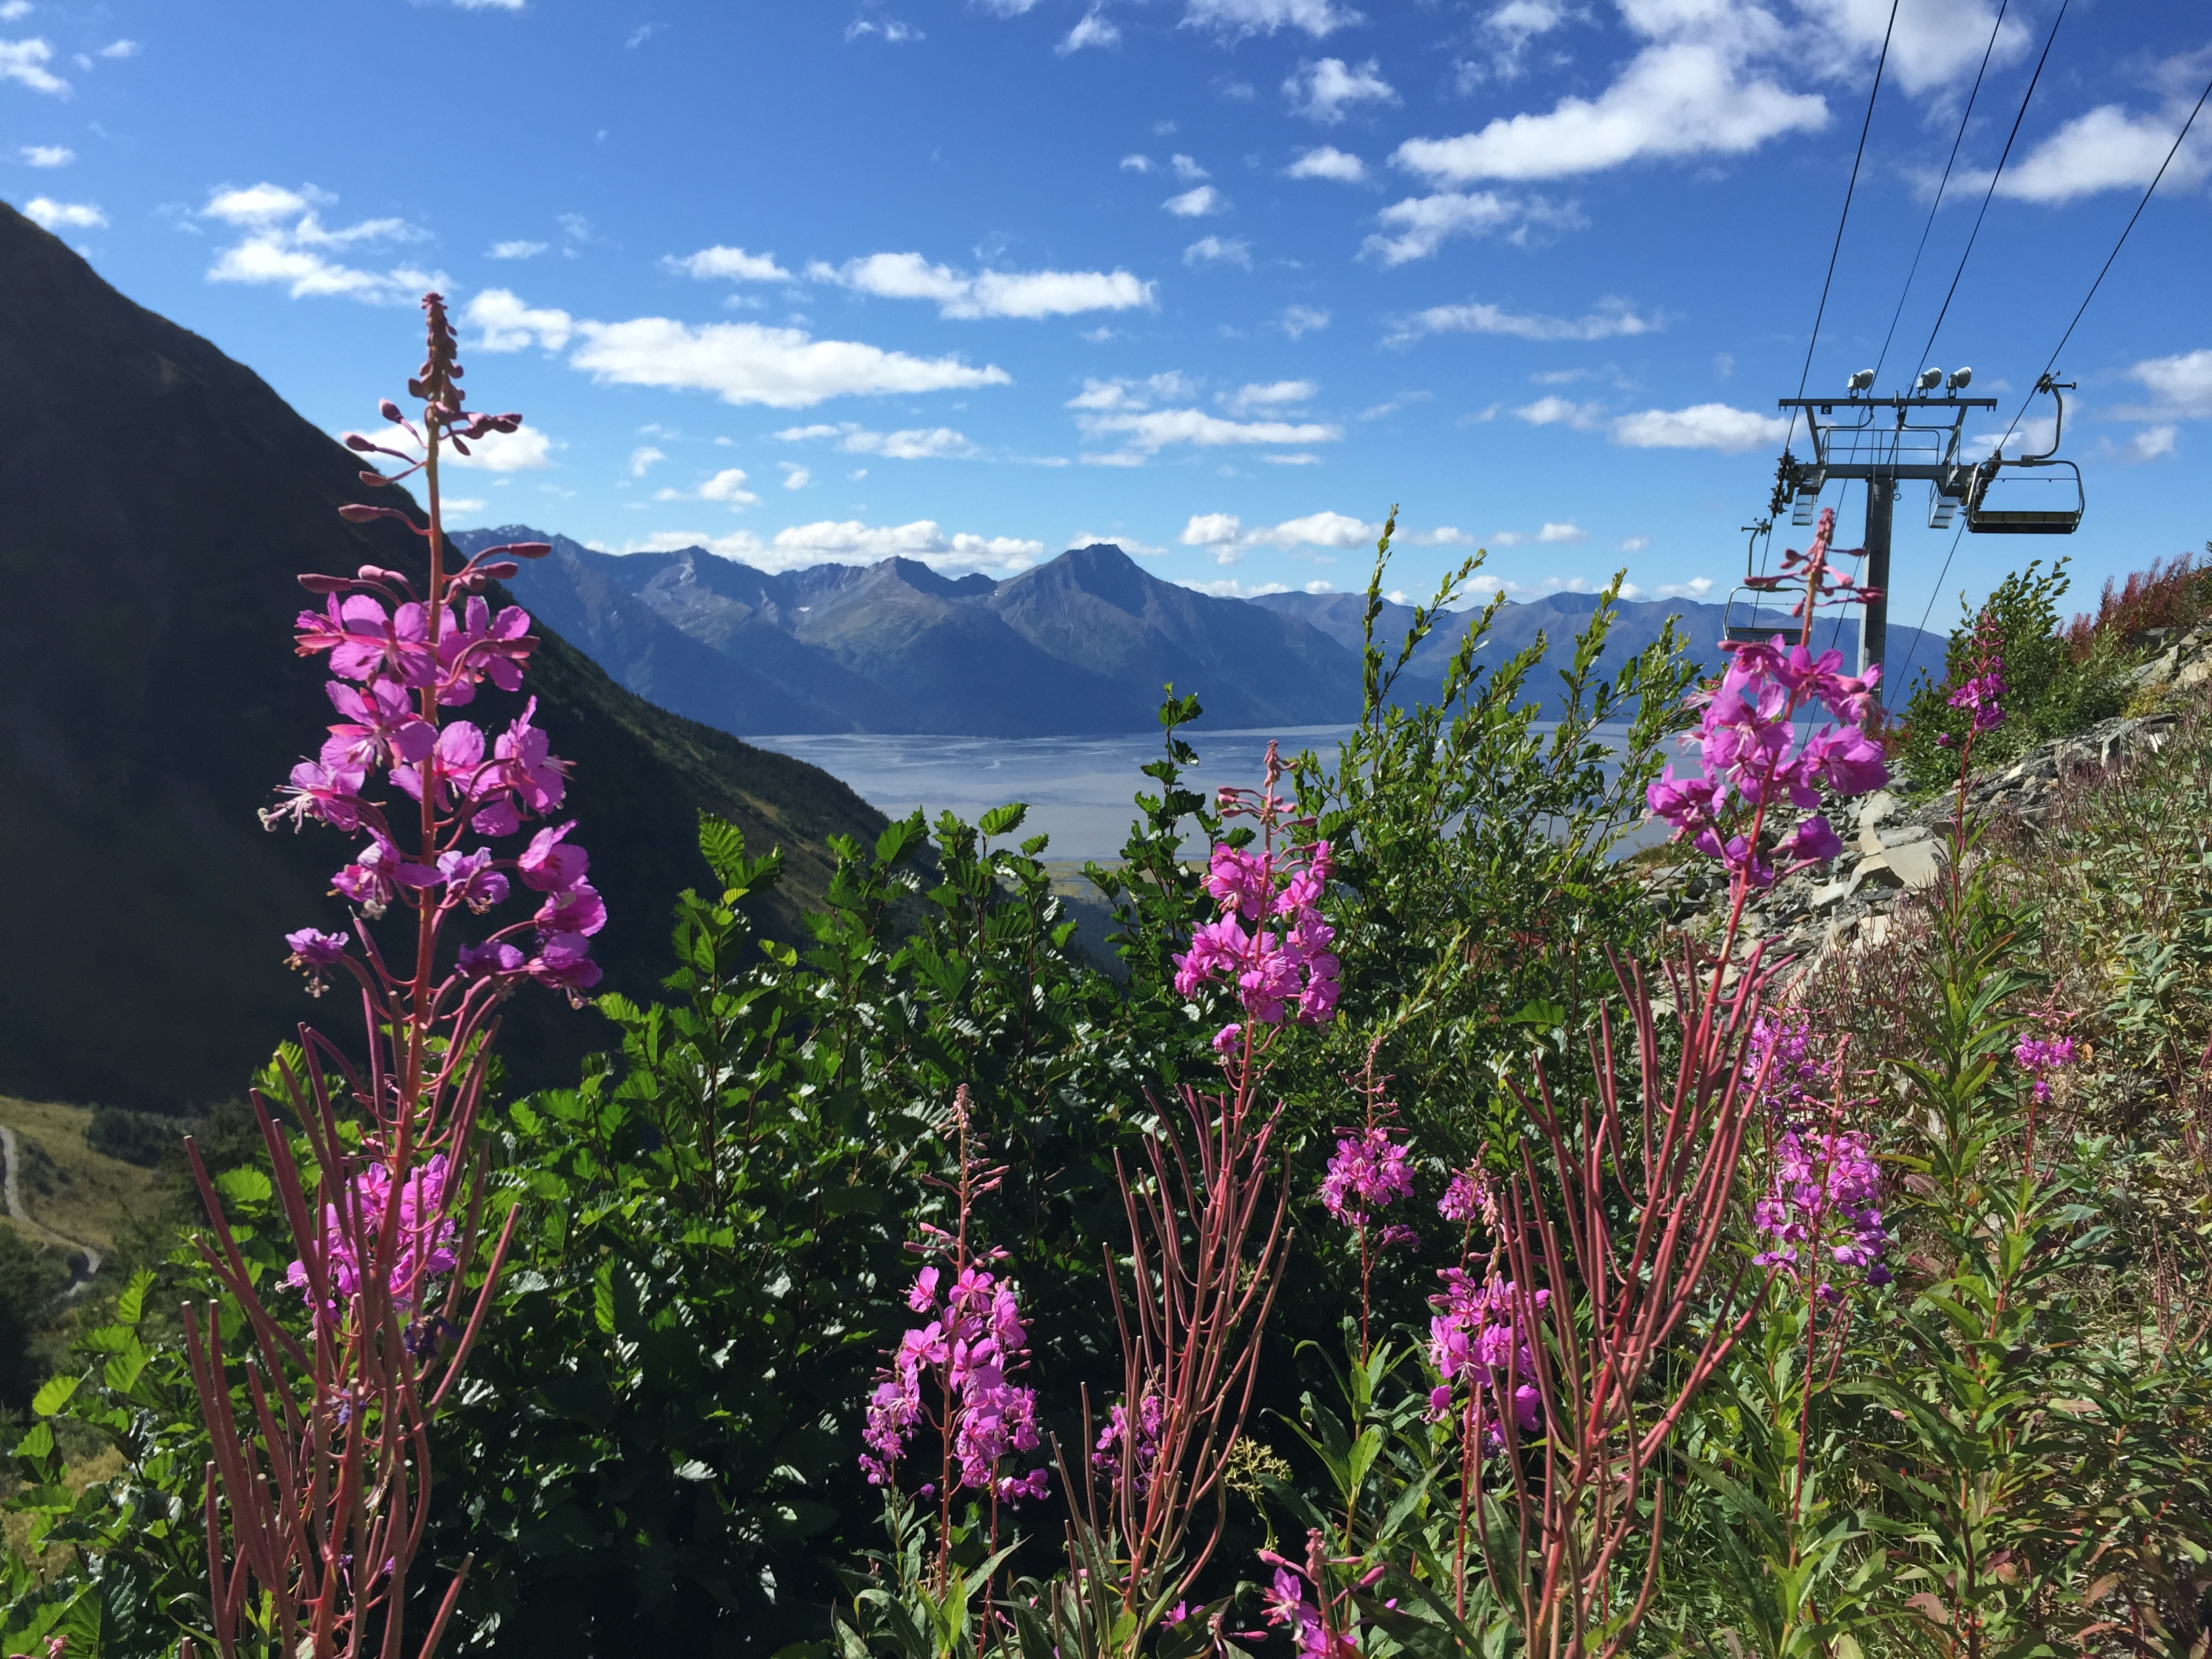 View from Alyeska